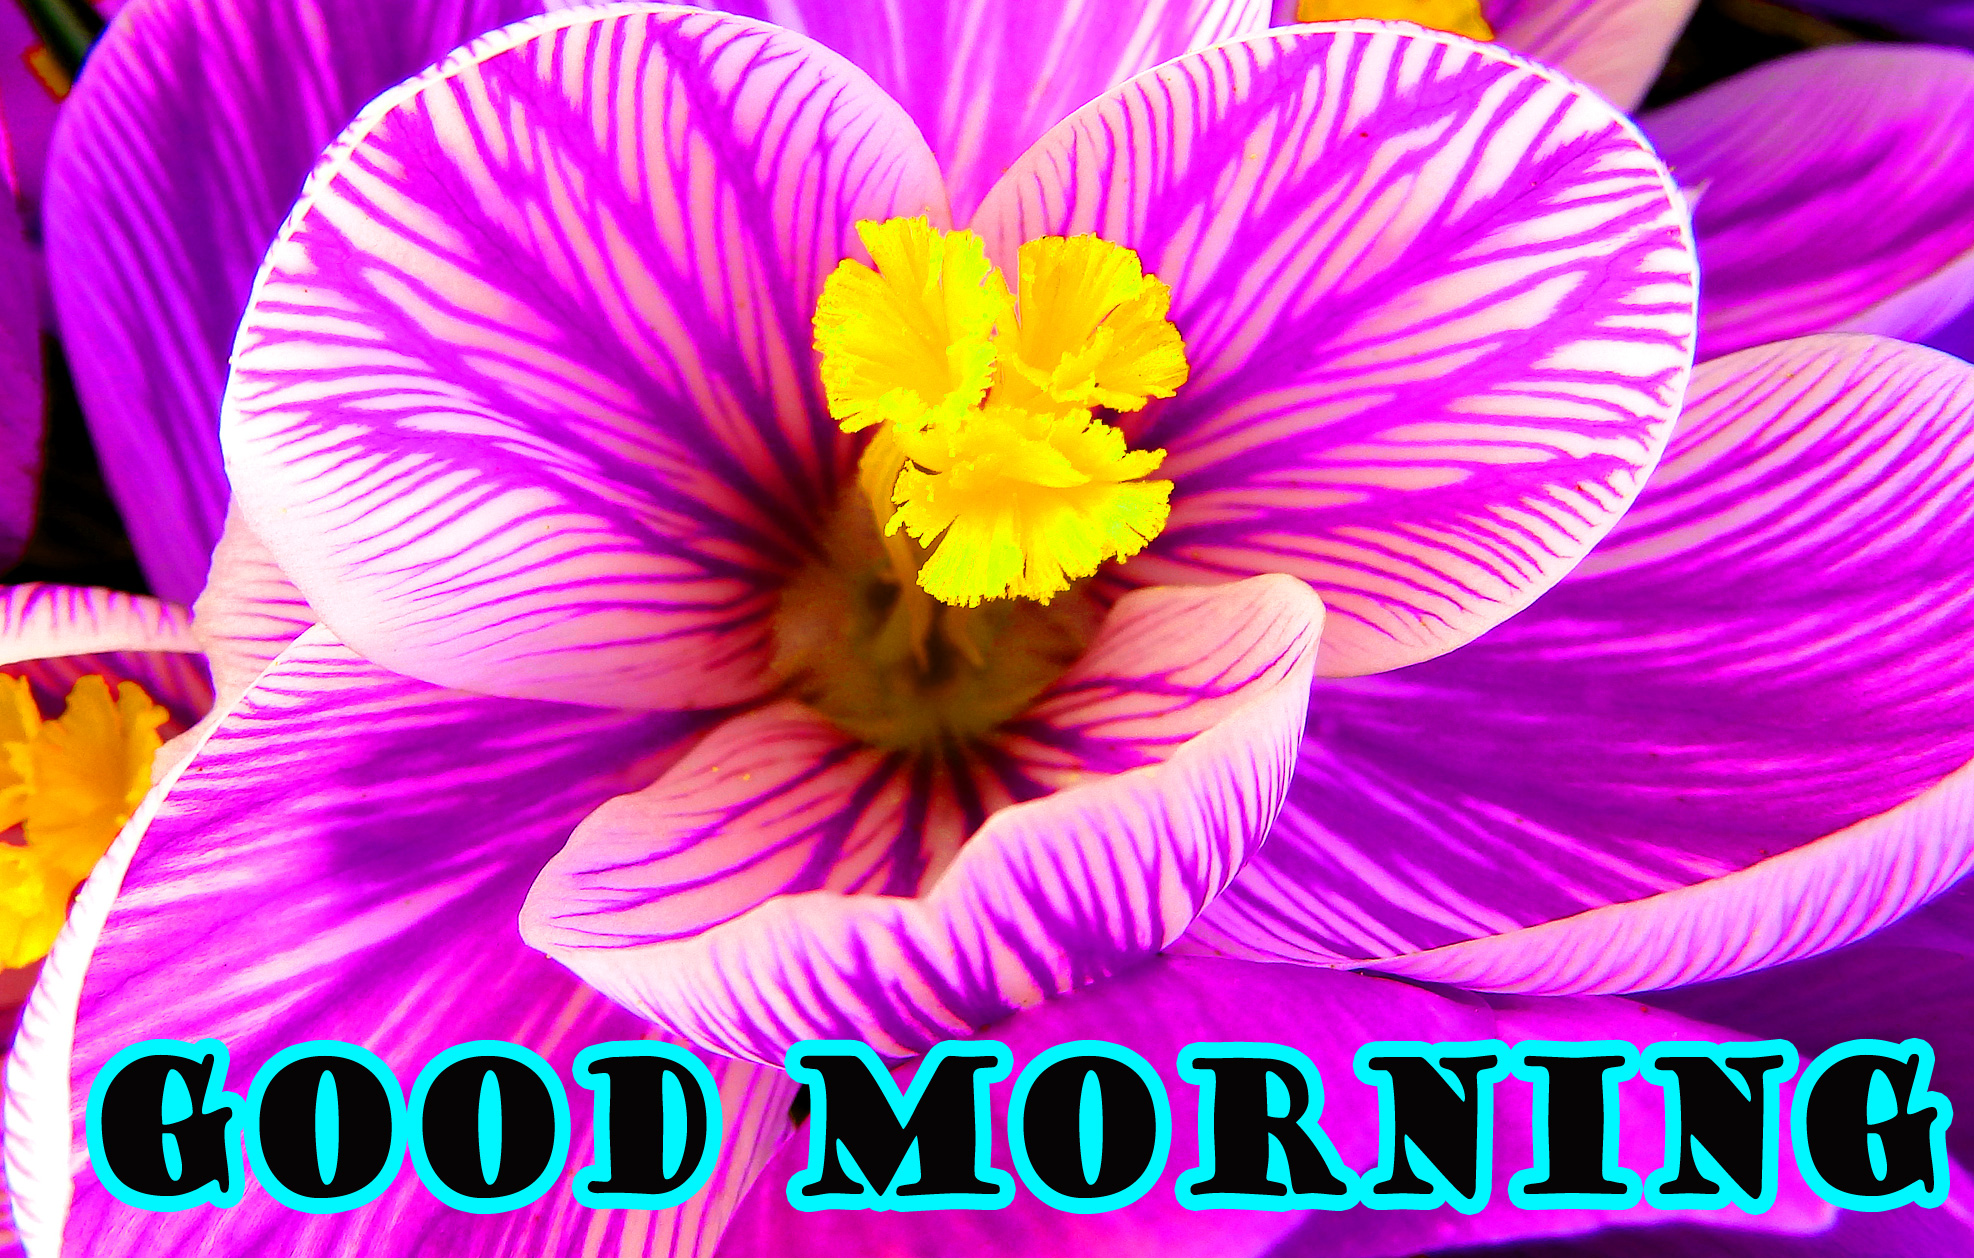 Good Morning Flowers Wallpaper Photo Images Free HD Download